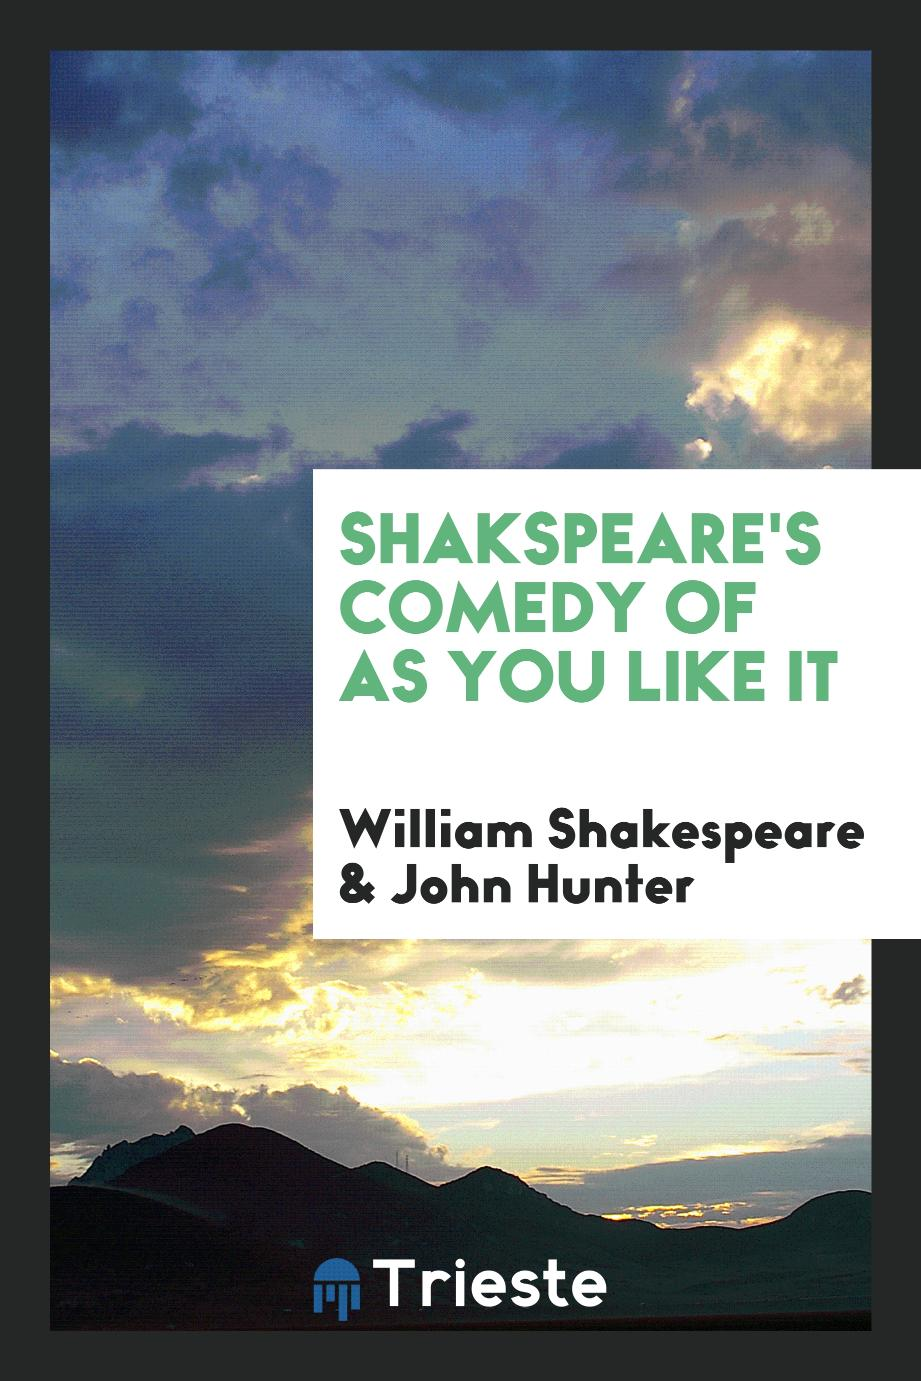 Shakspeare's Comedy of as You like It